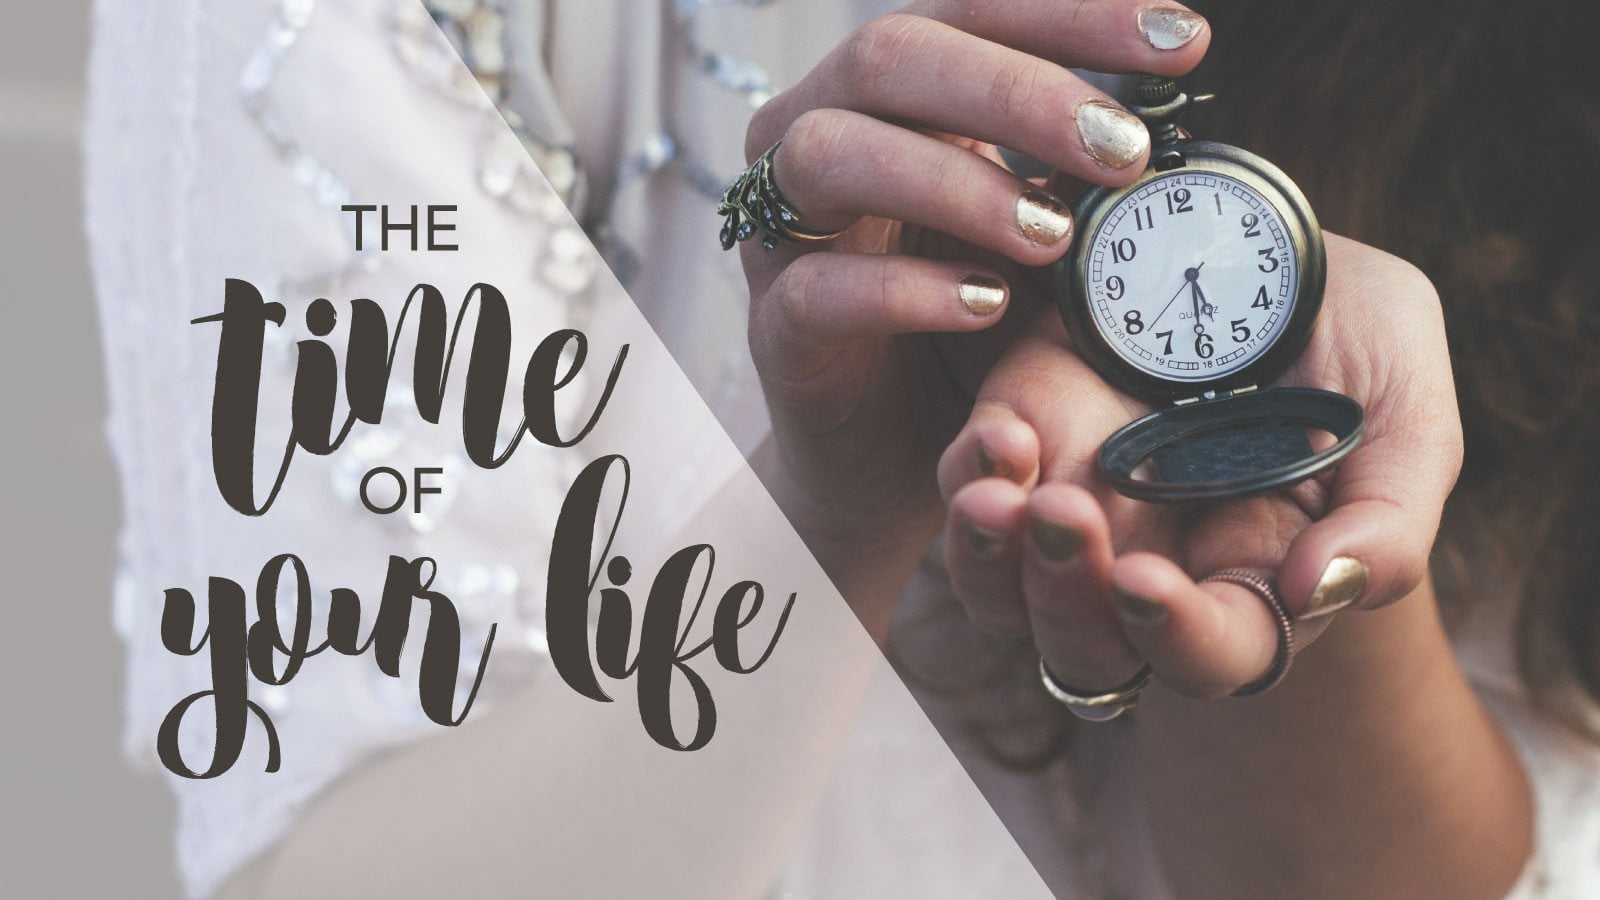 featured-image_1600x900_the-time-of-your-life